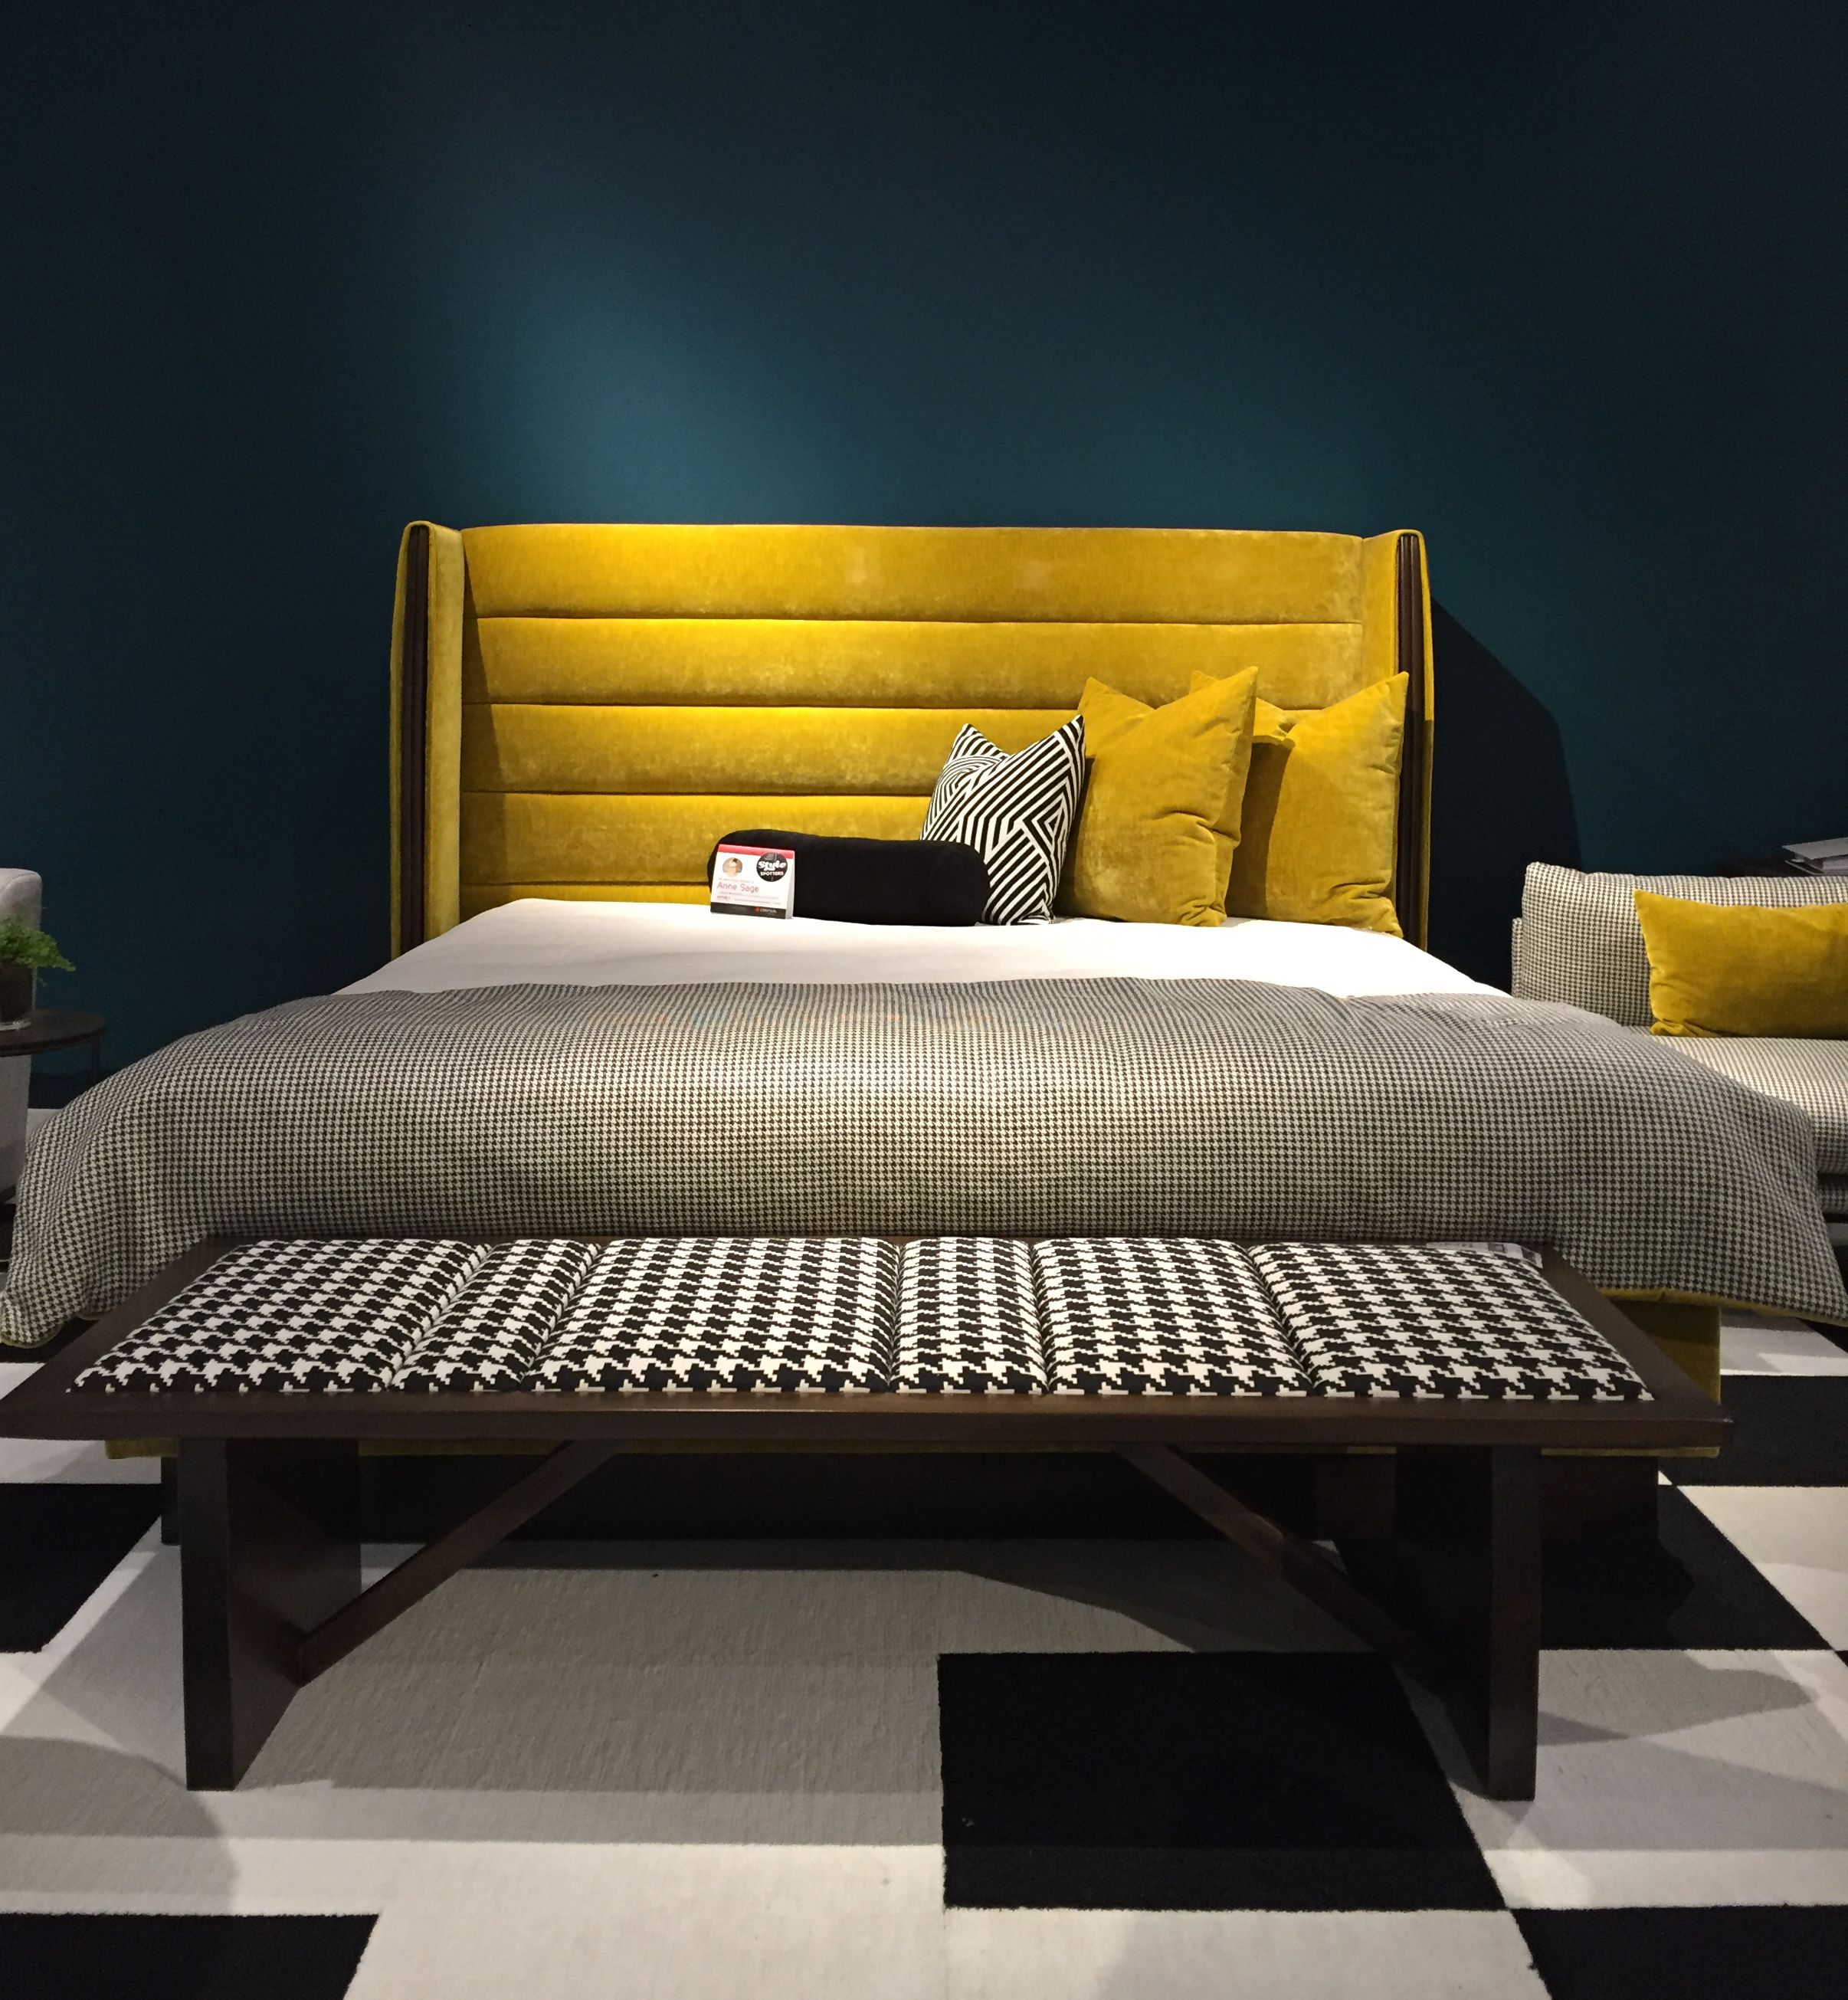 horizontal channel tufted headboard in a rich